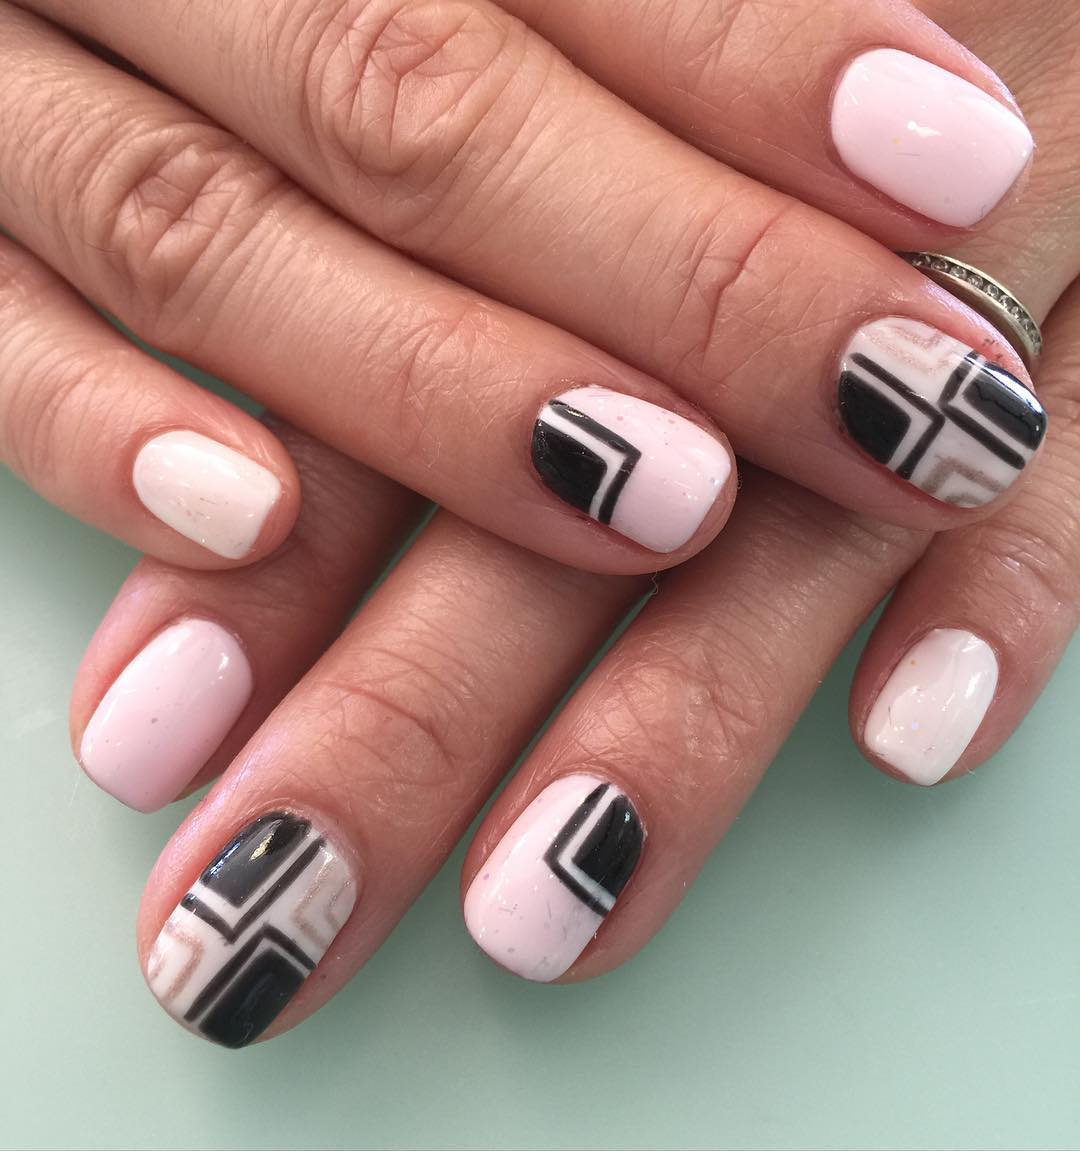 25+ Light Pink Nail Art Designs, Ideas | Design Trends - Premium PSD ...